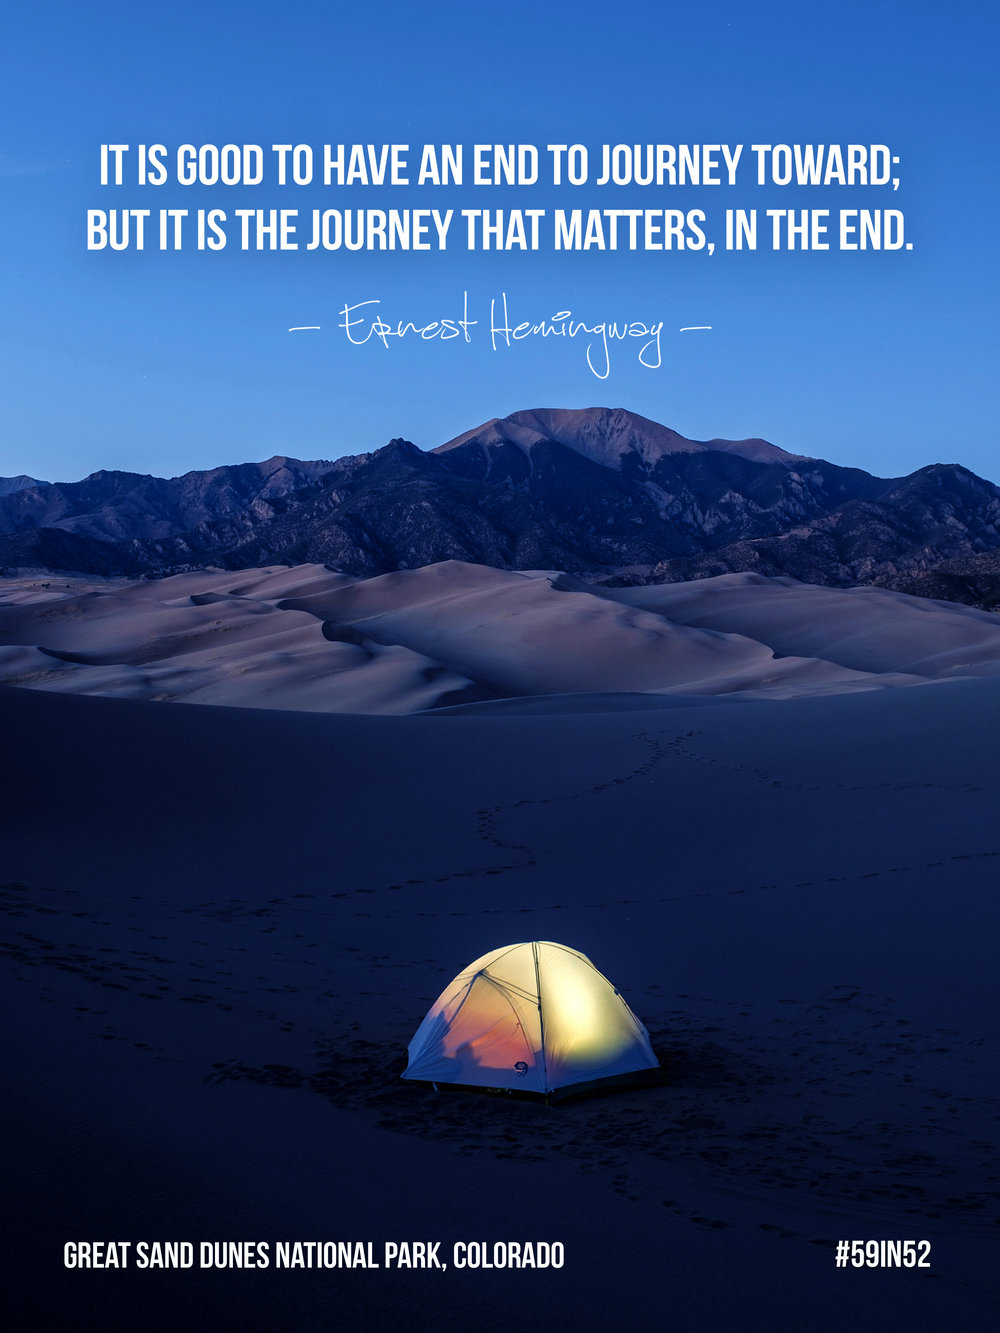 """It is good to have an end to journey toward, but it is the journey that matters, in the end."" - Ernest Hemingway"